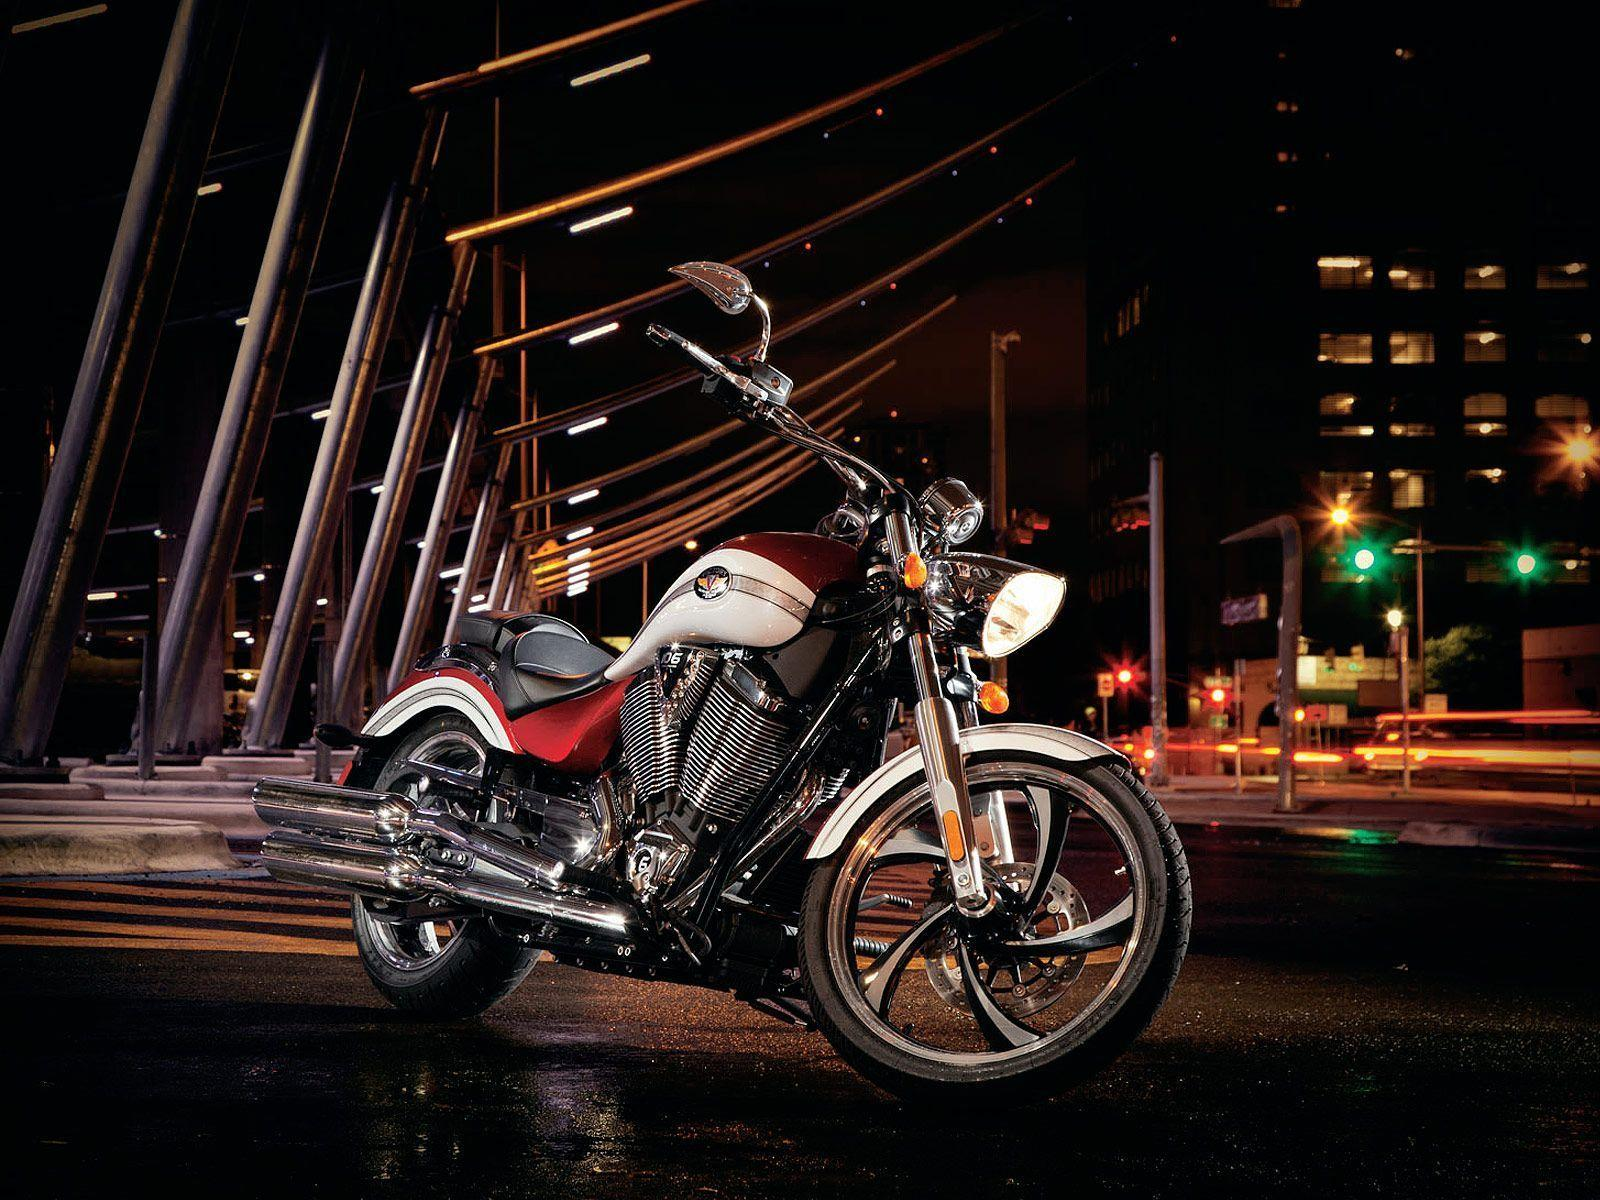 Luxury Motorcycle Hd Wallpapers: Victory Motorcycles Wallpapers